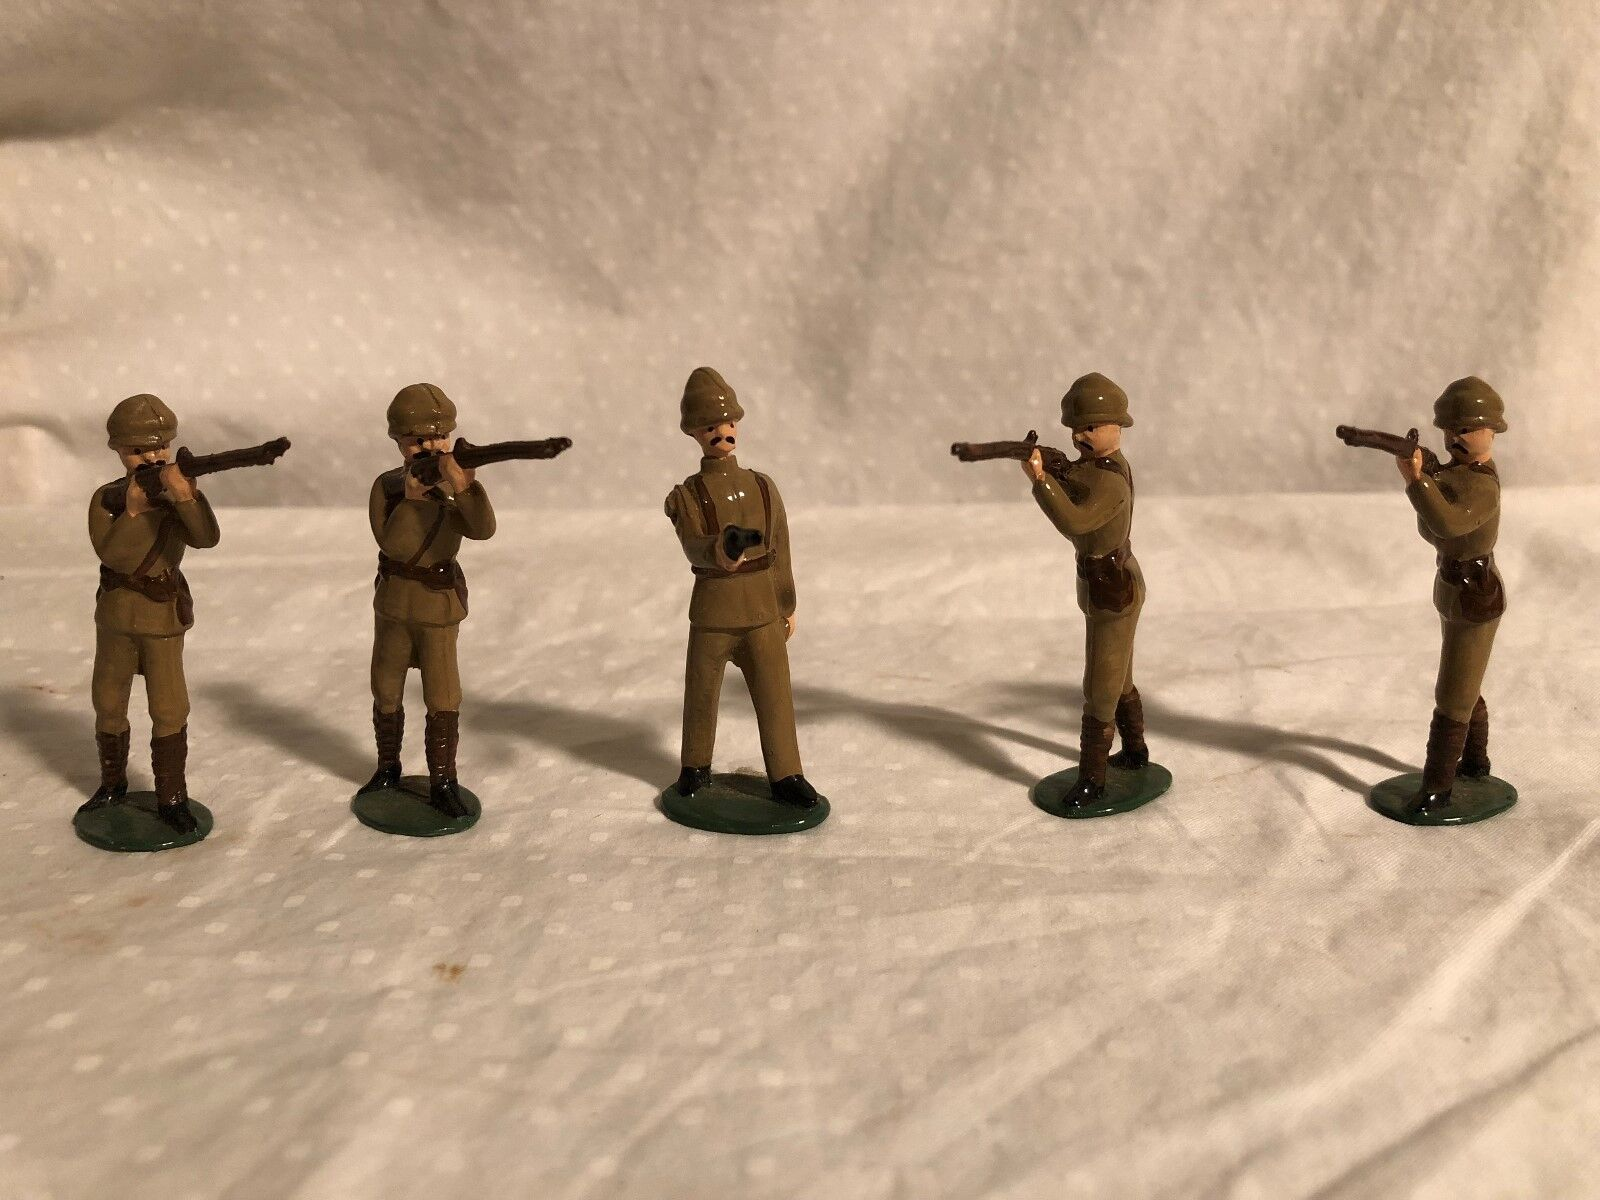 Lead Lead Lead Soldiers European Tan Uniforms 5 piece set British feb